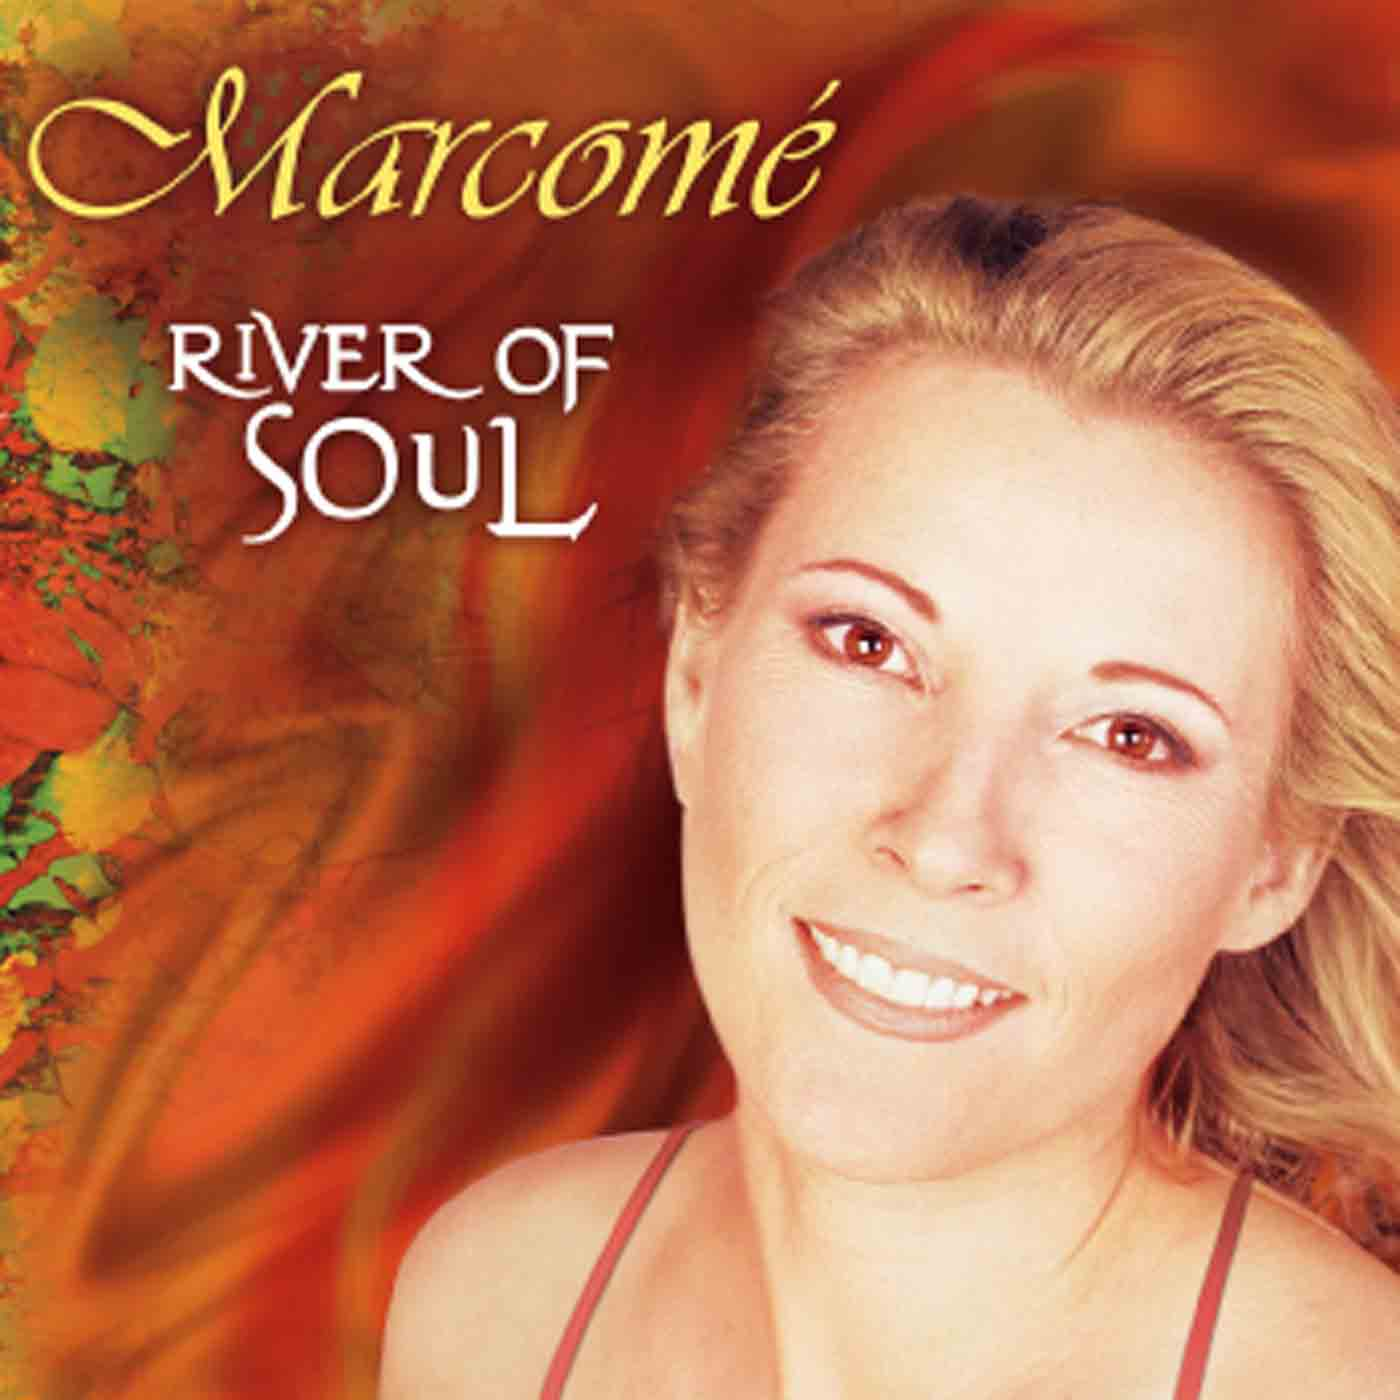 http://indiemusicpeople.com/uploads2/57031_9_30_2007_10_24_07_PM_-_RIver_of_soul_Marcomé_2007.jpg